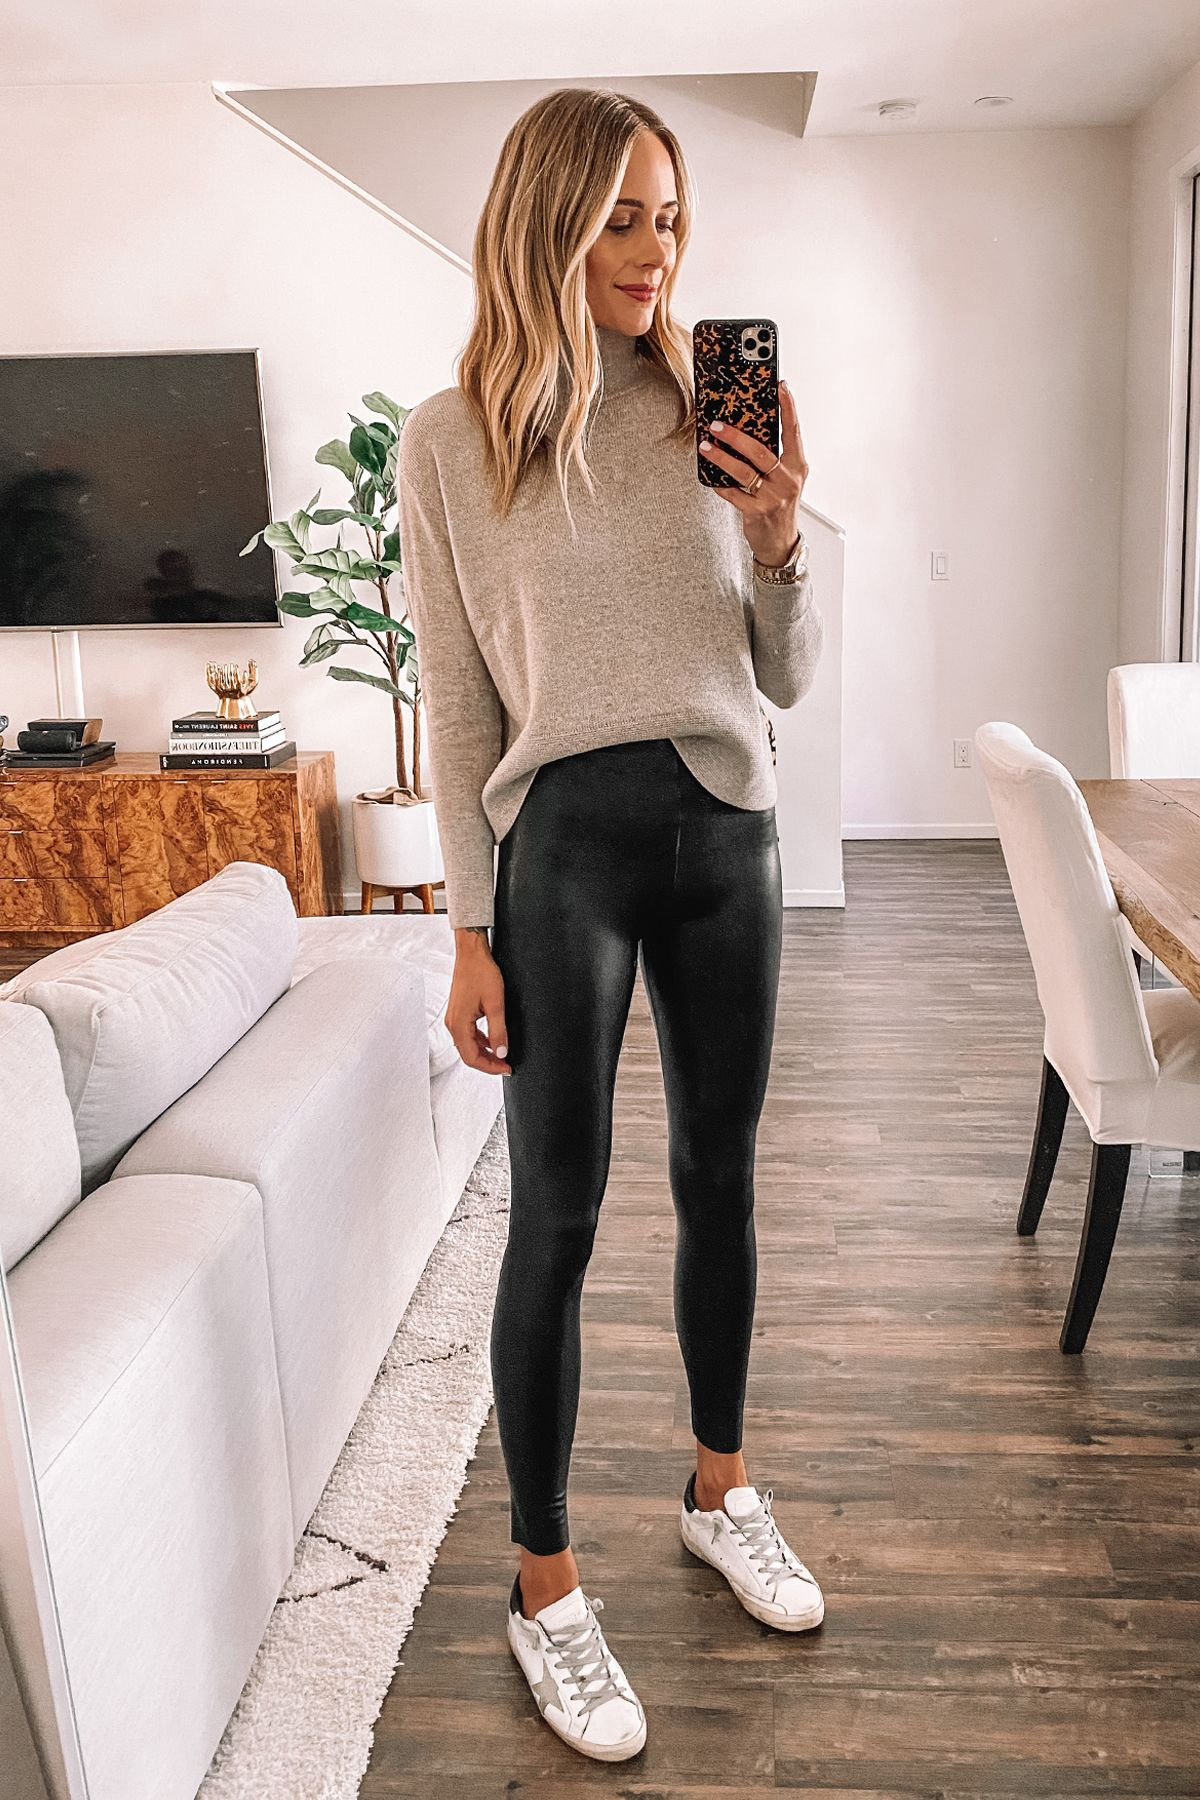 Spanx Vs Commando: Faux Leather Leggings Review & Comparison | Fashion Jackson